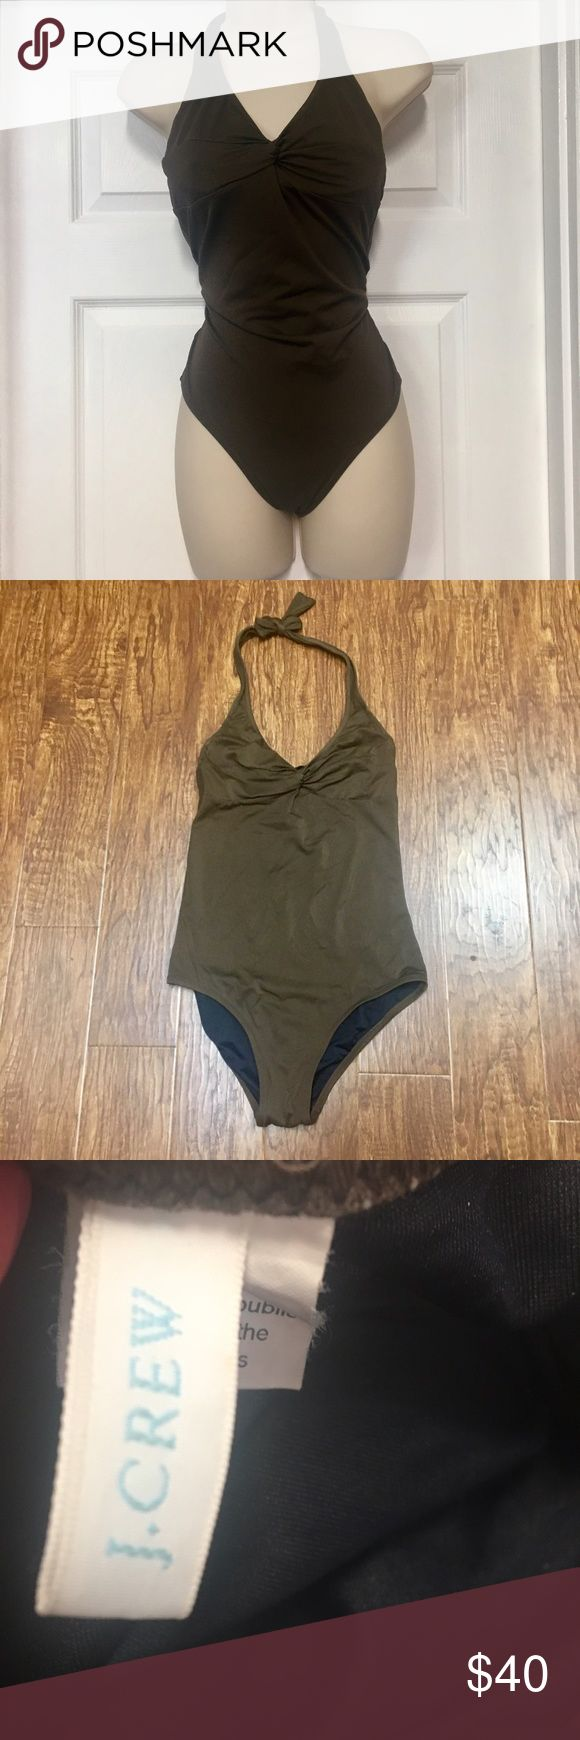 J. Crew brown one piece halter bathing suit size 6 Excellent preowned condition. J.Crew solid brown one piece halter bathing suit. Size 6 J. Crew Swim One Pieces